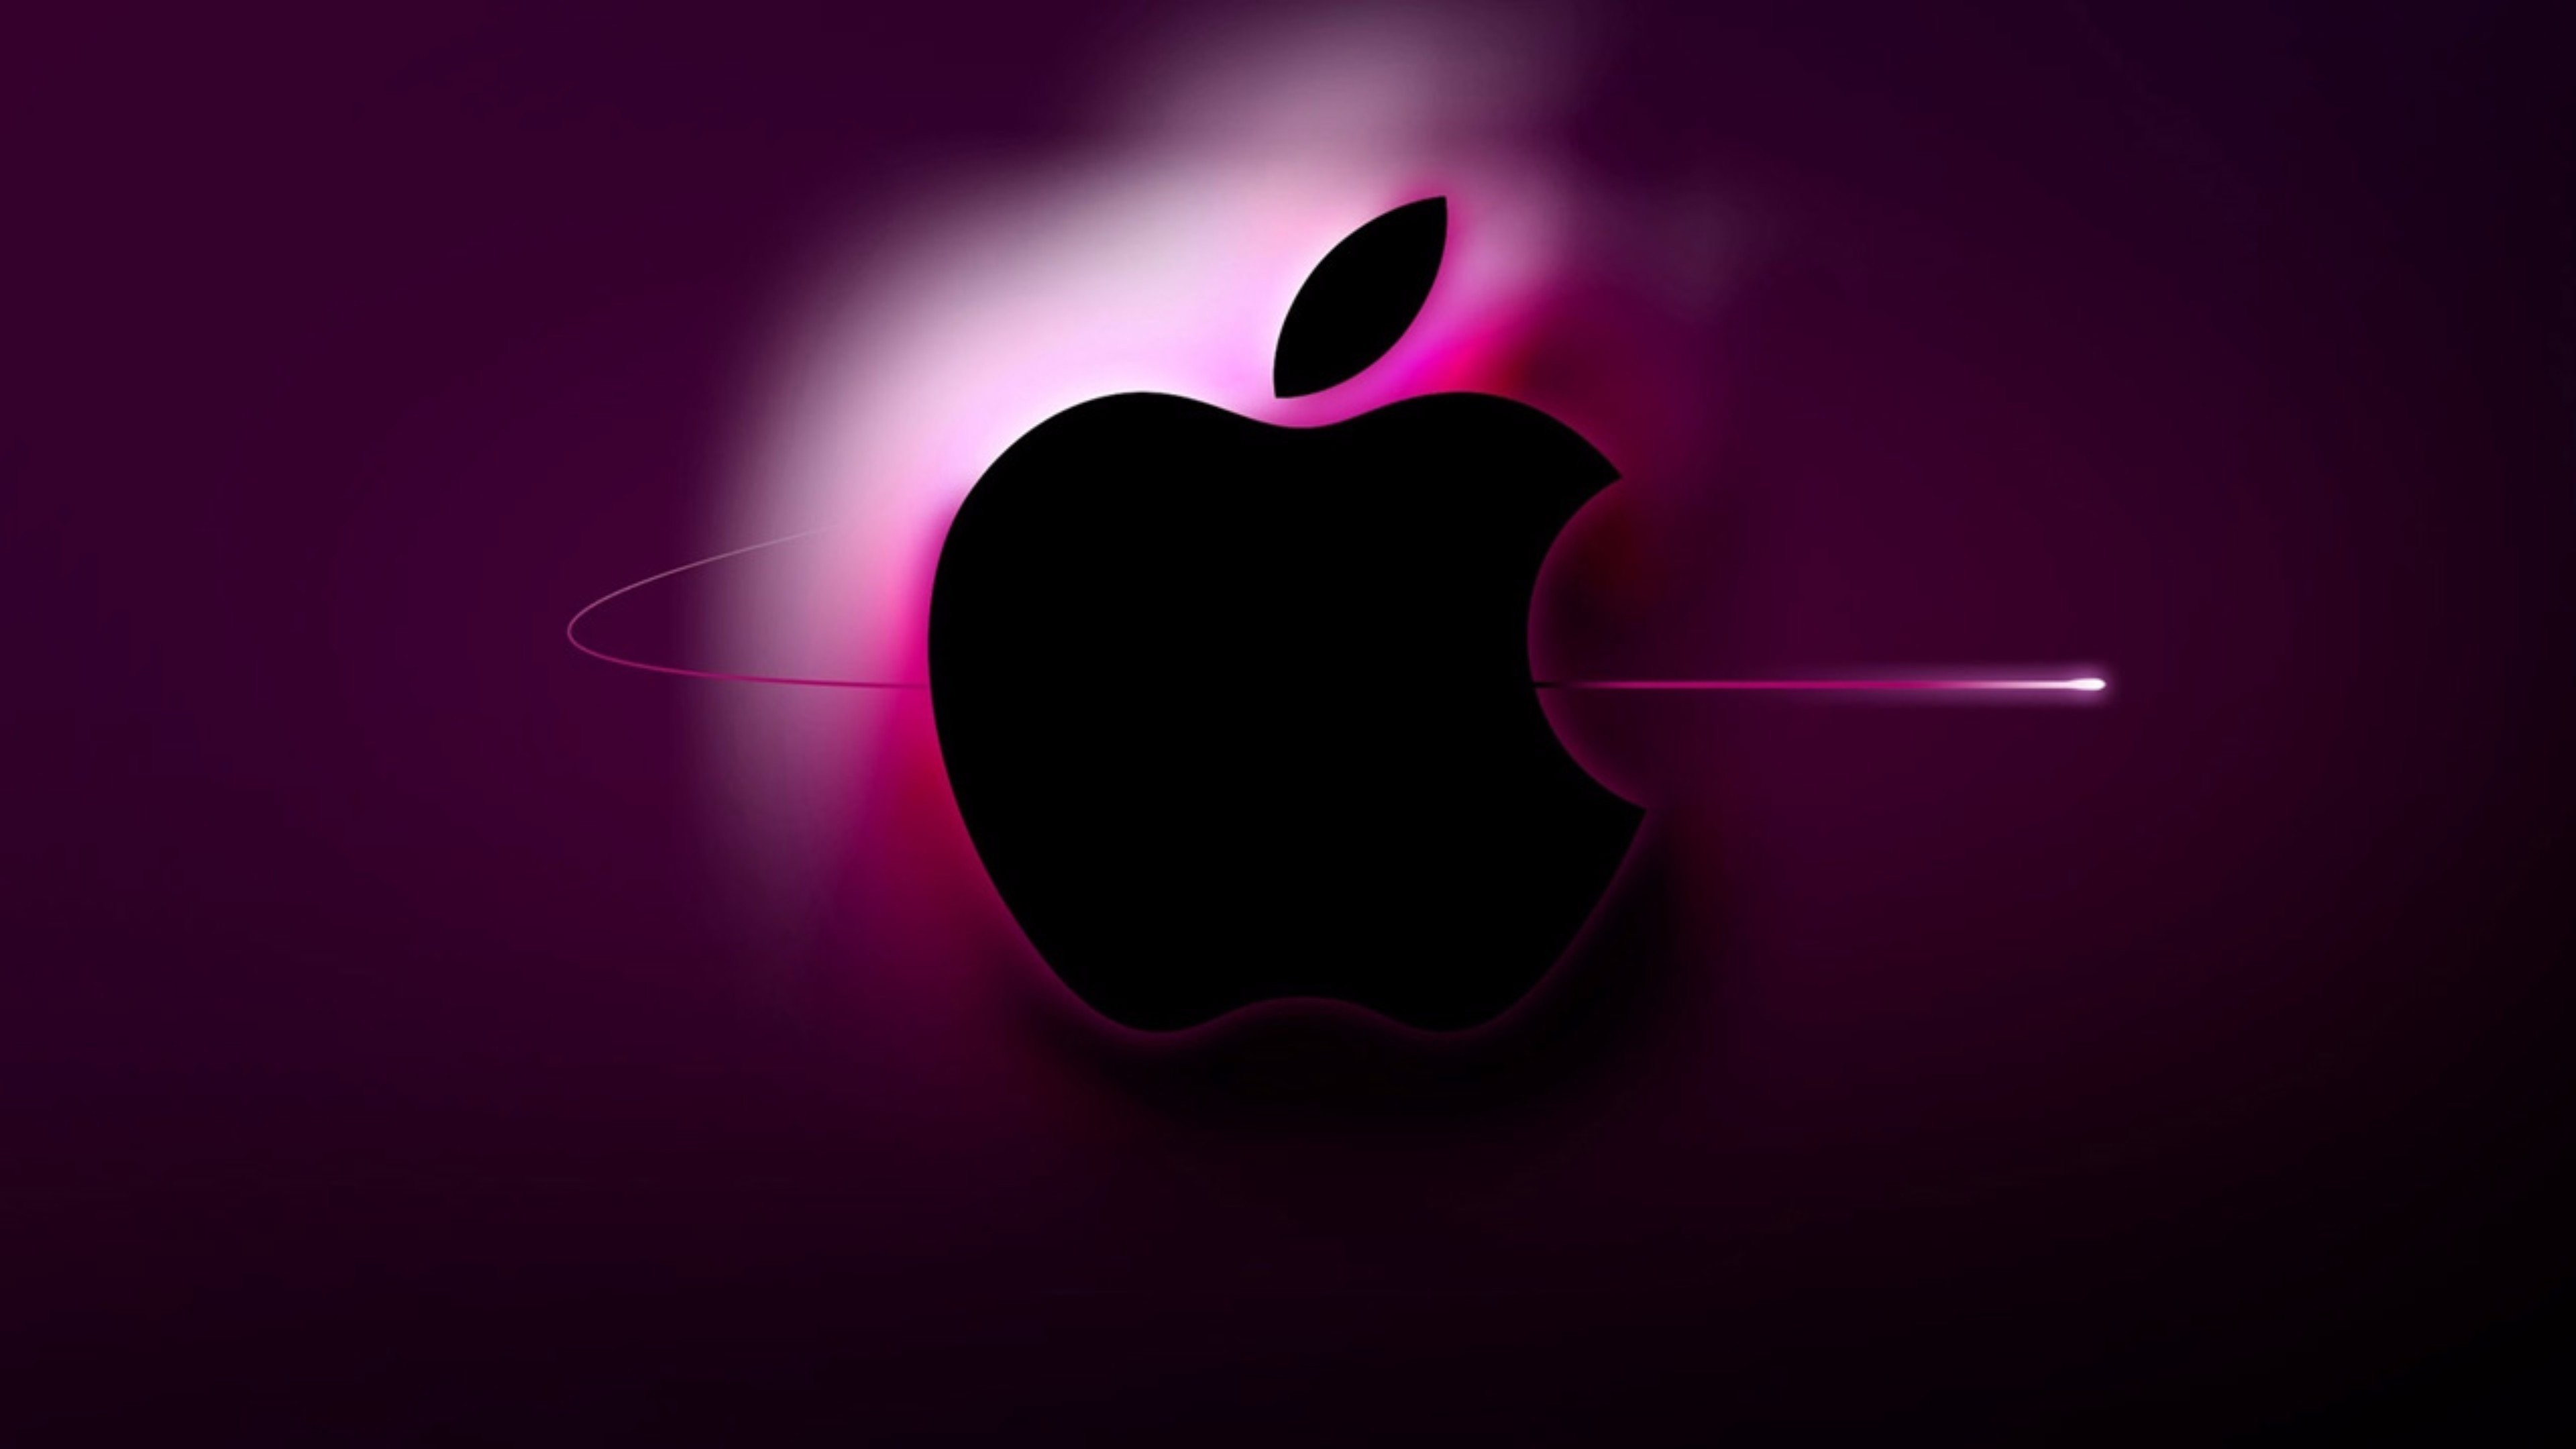 Purple Apple Wallpaper